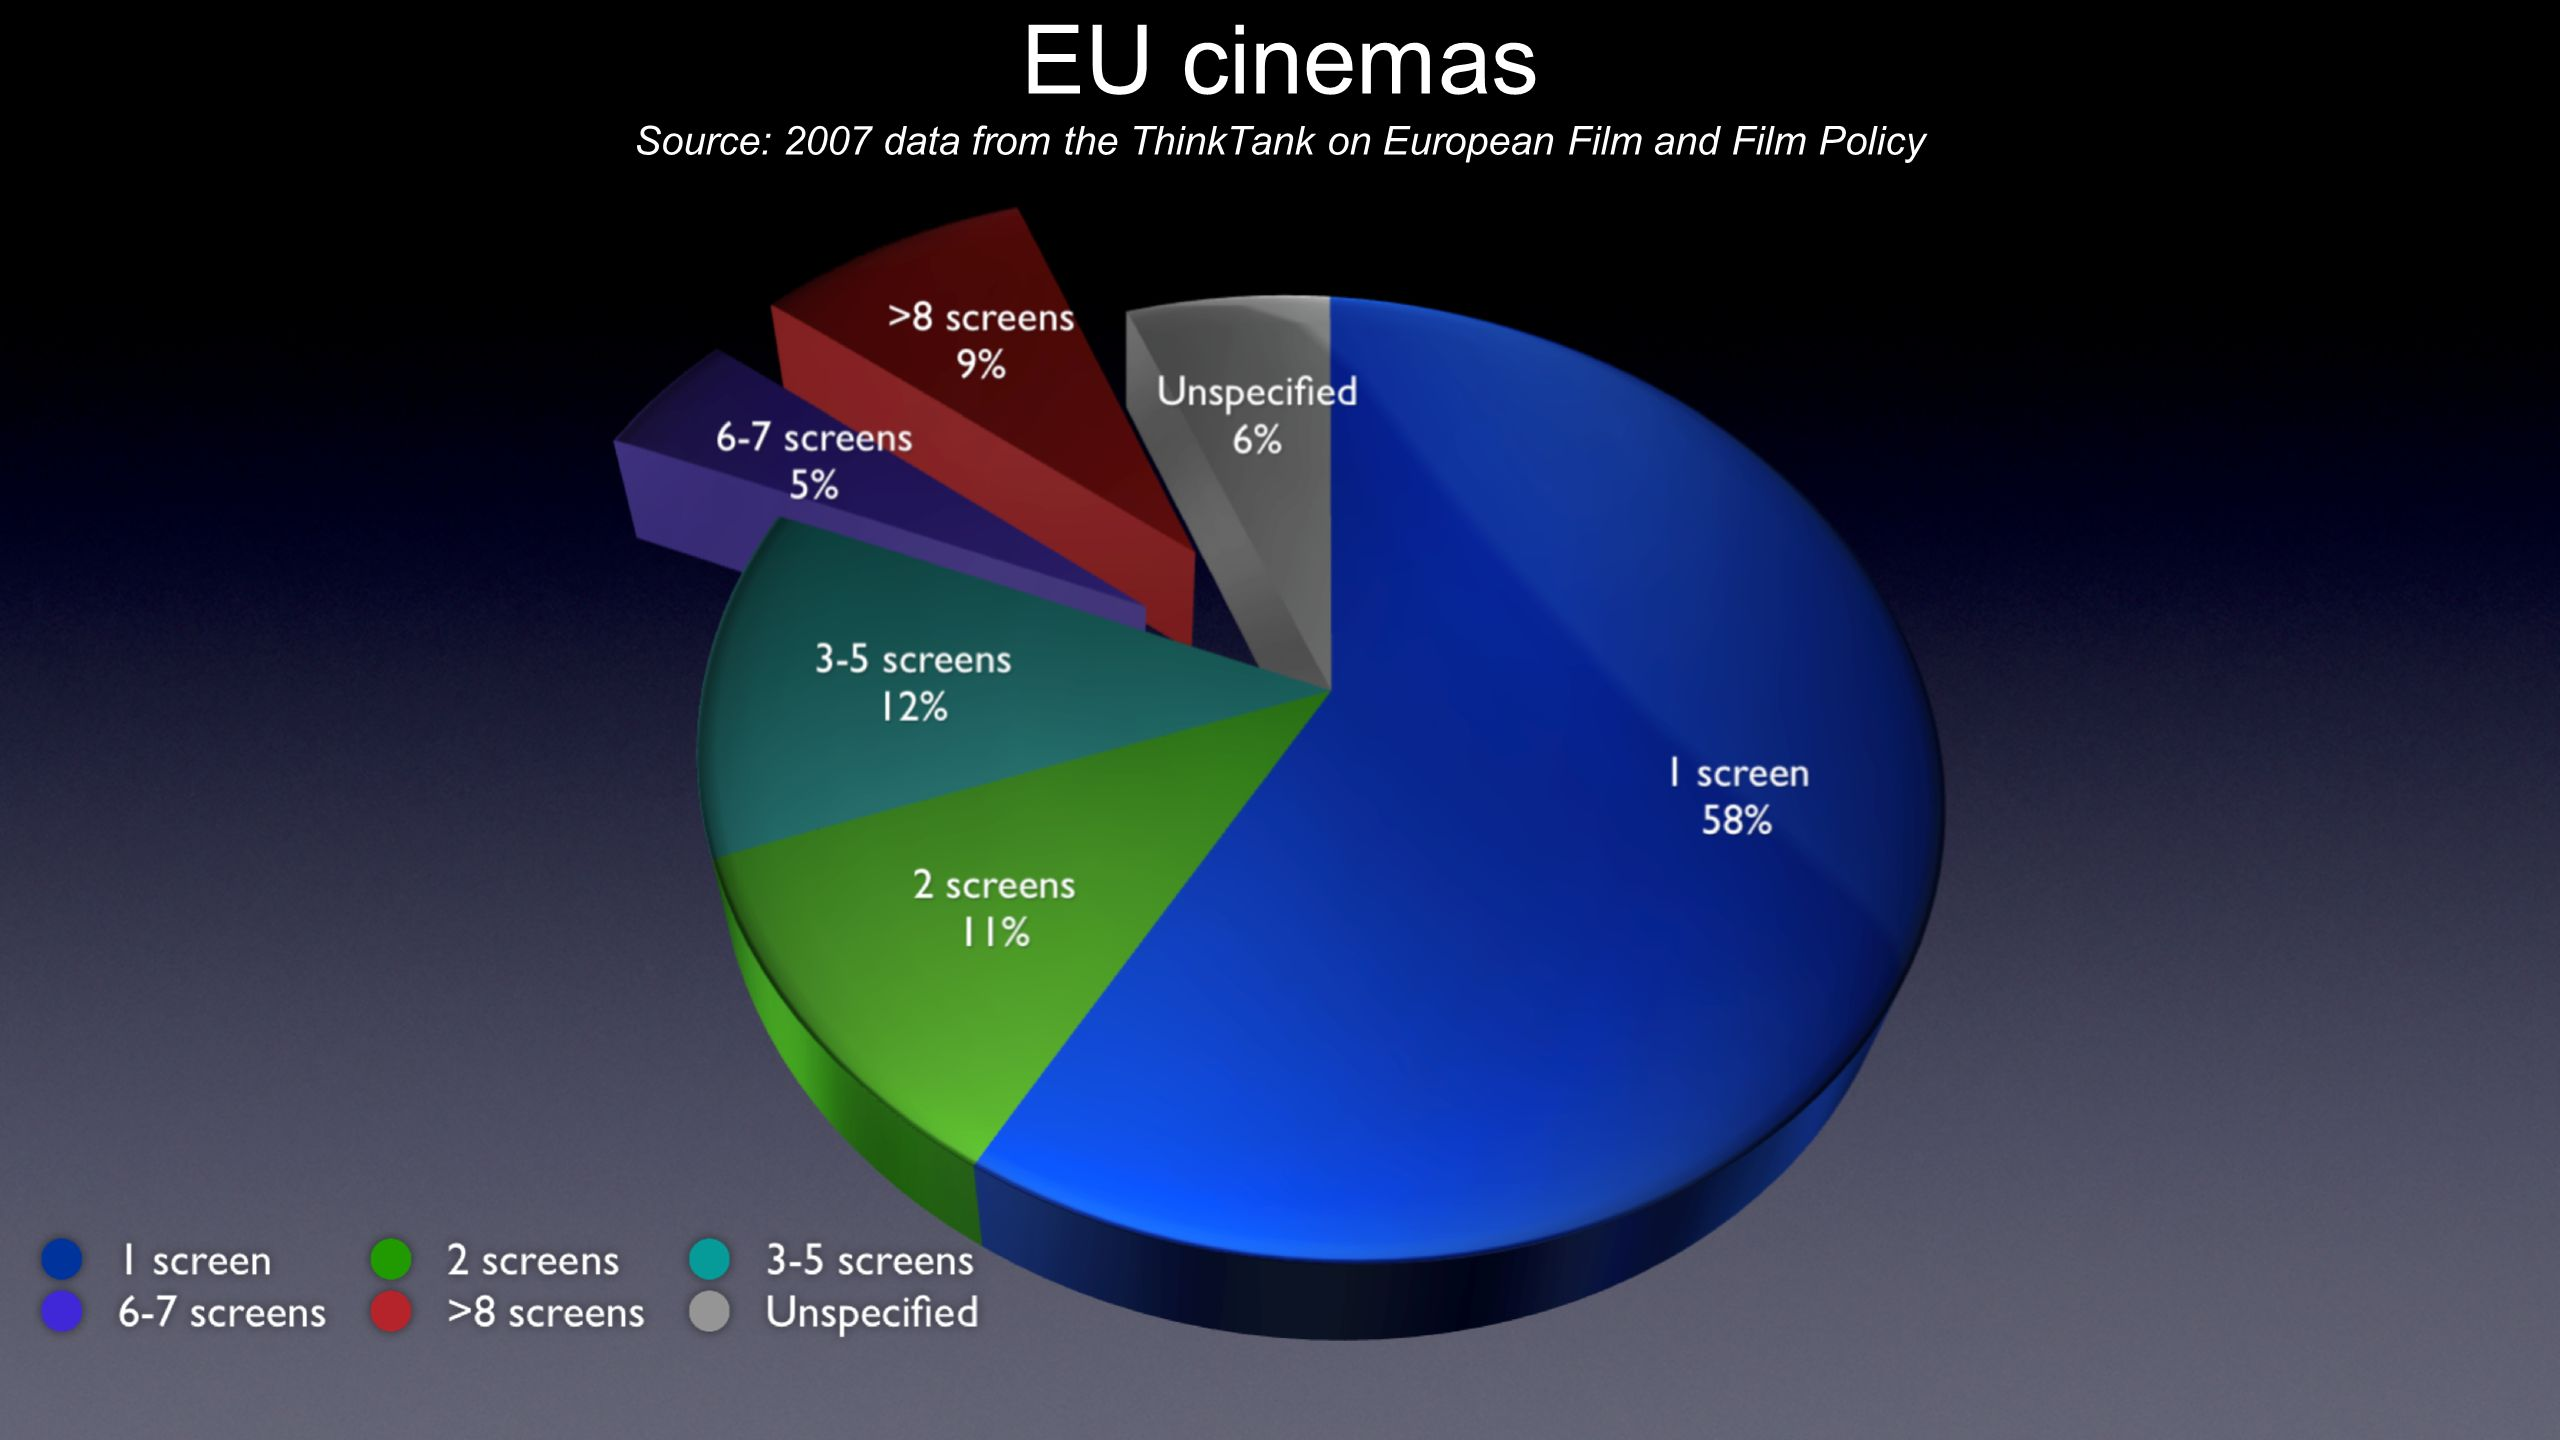 EU cinemas Source: 2007 data from the ThinkTank on European Film and Film Policy